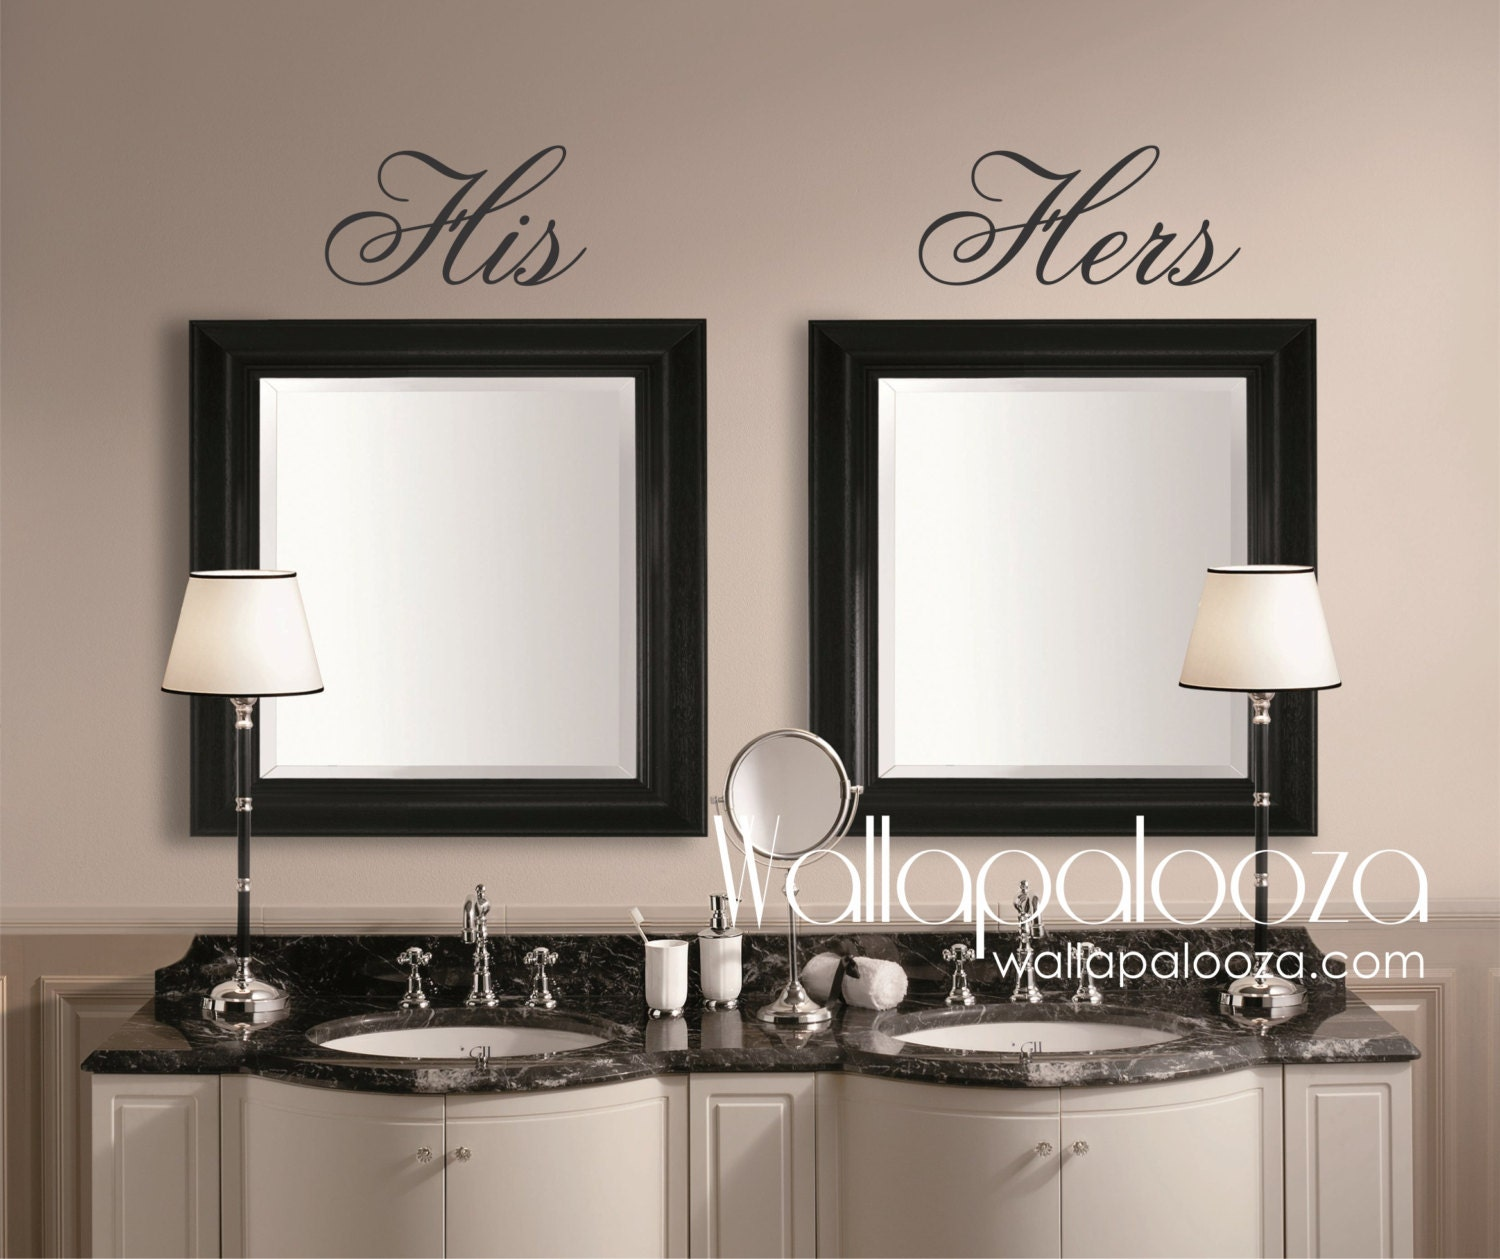 Bathroom wall decor his and hers wall decal mirror decal for His and hers bathroom